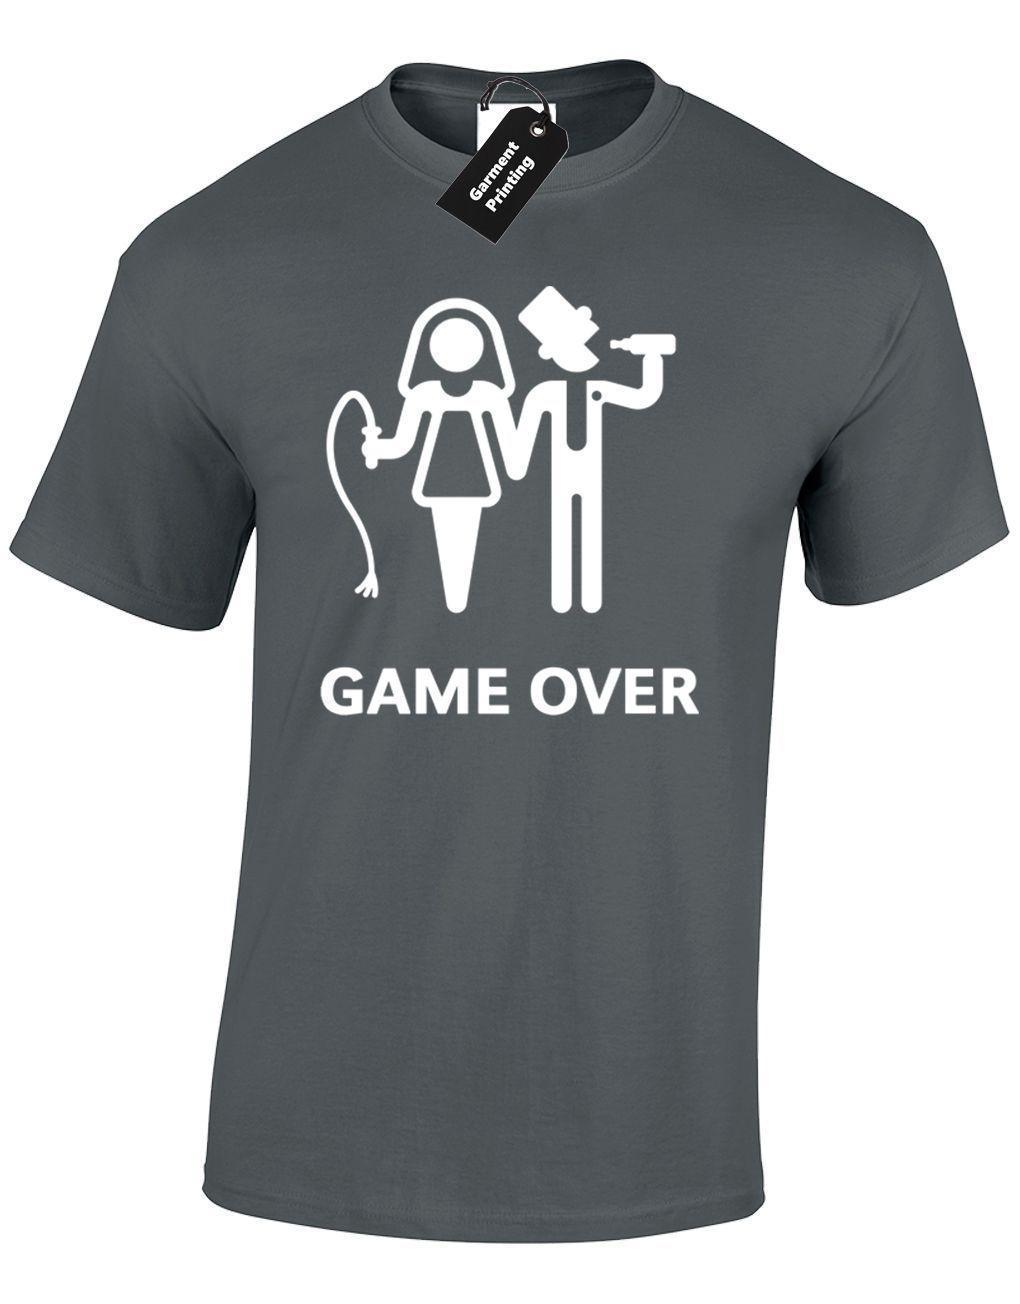 859b31d2 GAME OVER MENS T SHIRT FUNNY BRIDE GROOM AMUSING WEDDING NOVELTY GIFT TOP  Graphic Tee Shirts T Shirt Sayings From Jie55, $14.67| DHgate.Com